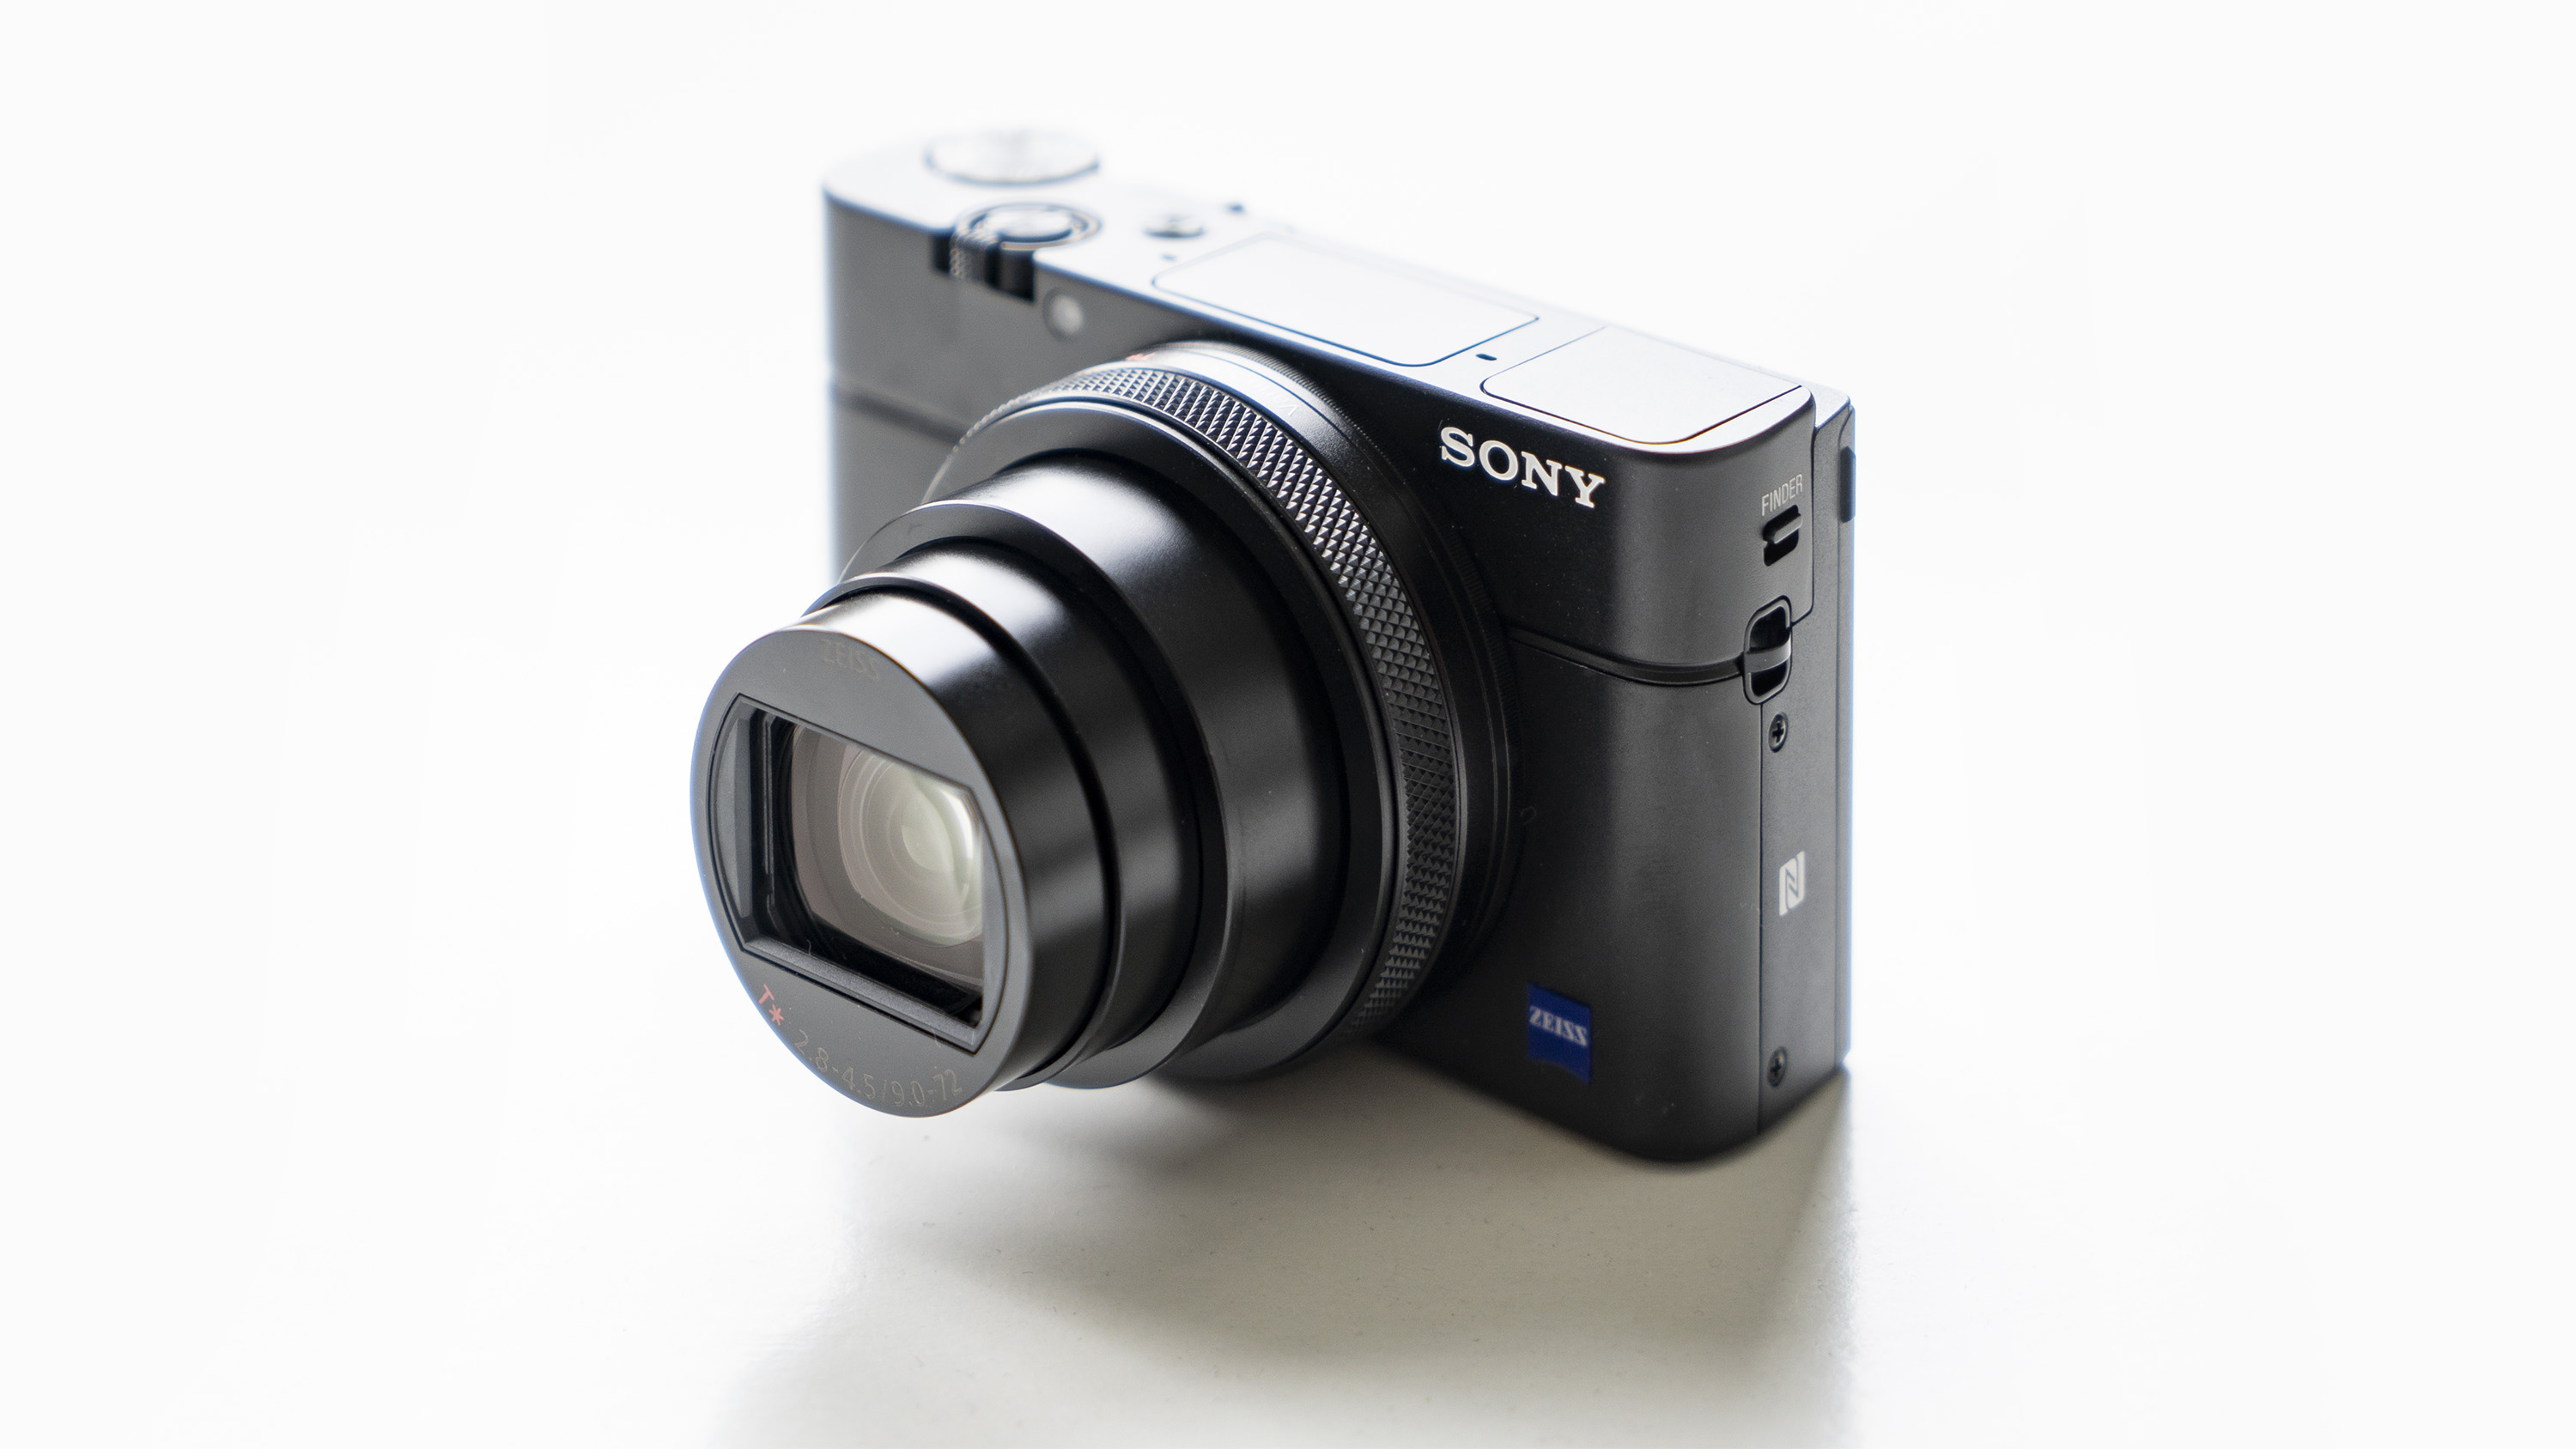 Best compact camera: Sony Cyber-shot RX100 VI